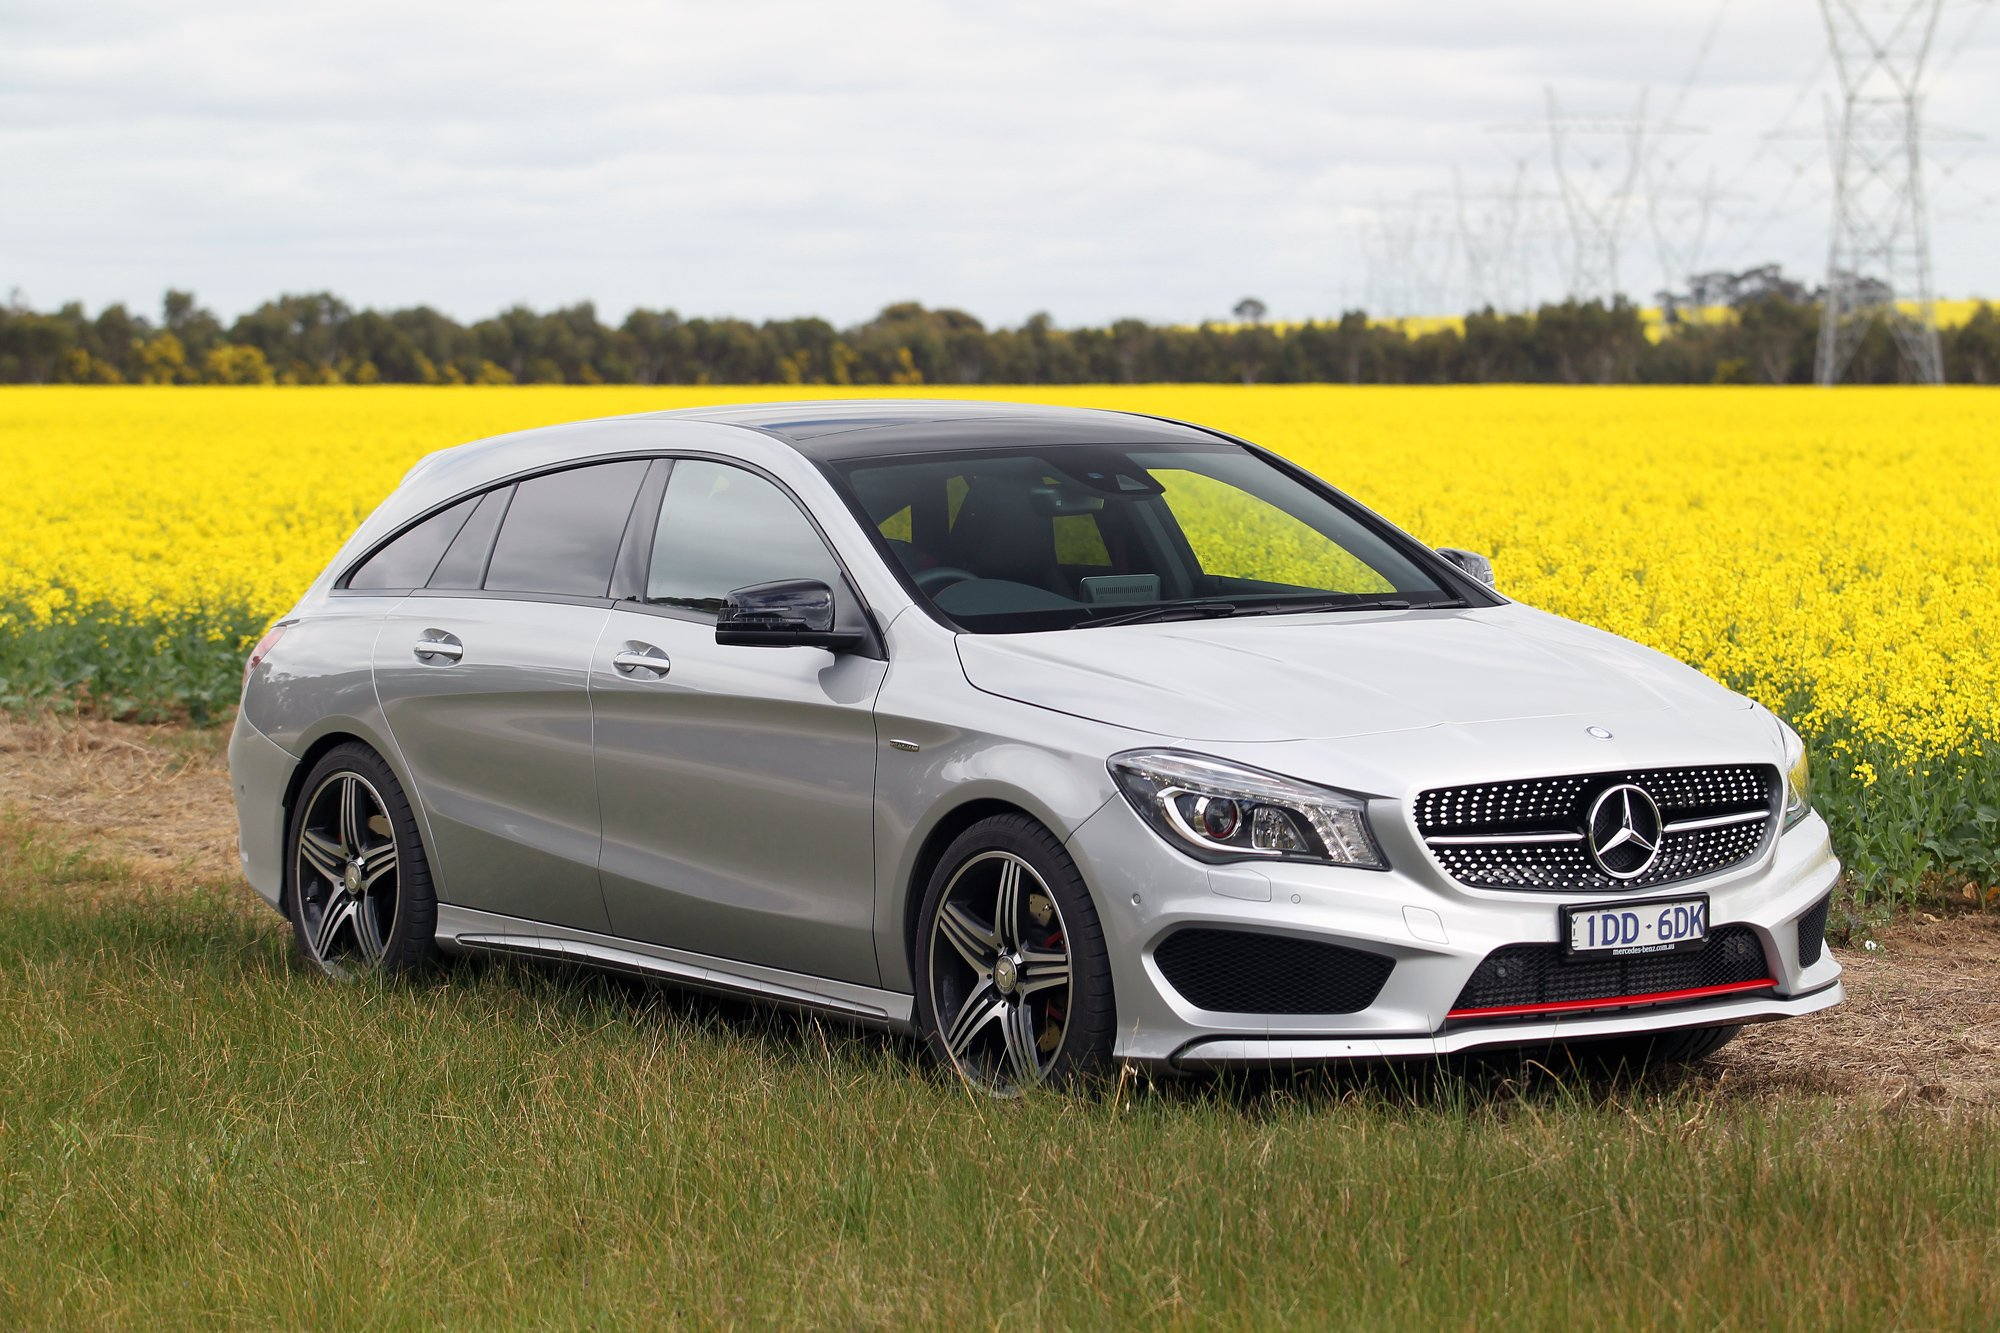 Mercedes benz cla250 shooting brake review photos for Mercedes benz cla 250 review